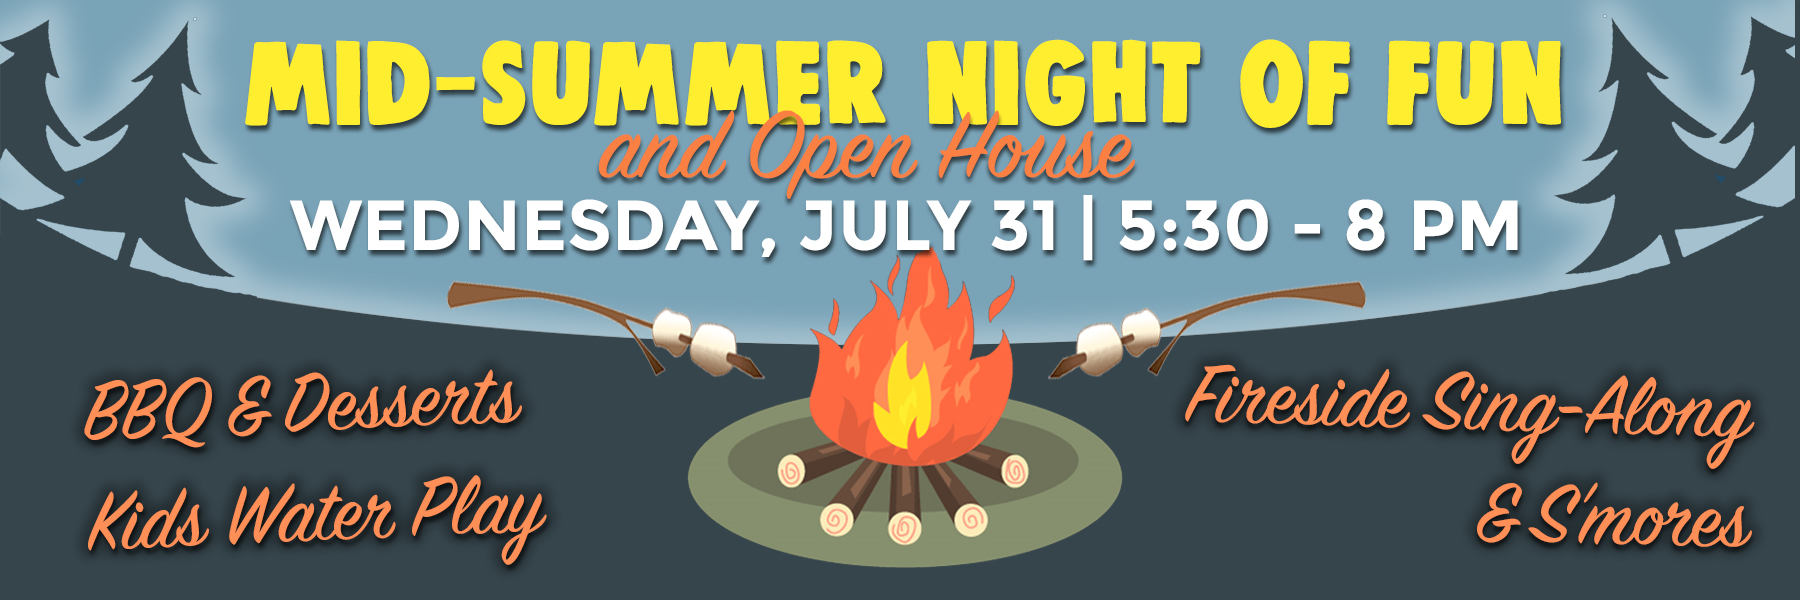 """<a href=""""https://www.barnerttemple.org/event/summernightoffun.html""""                                     target=""""_blank"""">                                                                 <span class=""""slider_title"""">                                     Night of Community Fun for All Ages                                </span>                                                                 </a>                                                                                                                                                                                       <span class=""""slider_description"""">Meet new friends, hang out with old friends, andenjoy a great evening of food and summertime fun for all ages!  New to the area?  We'd love to give you a short tour and introduce you to some of our community leaders.  Click above to RSVP!</span>"""